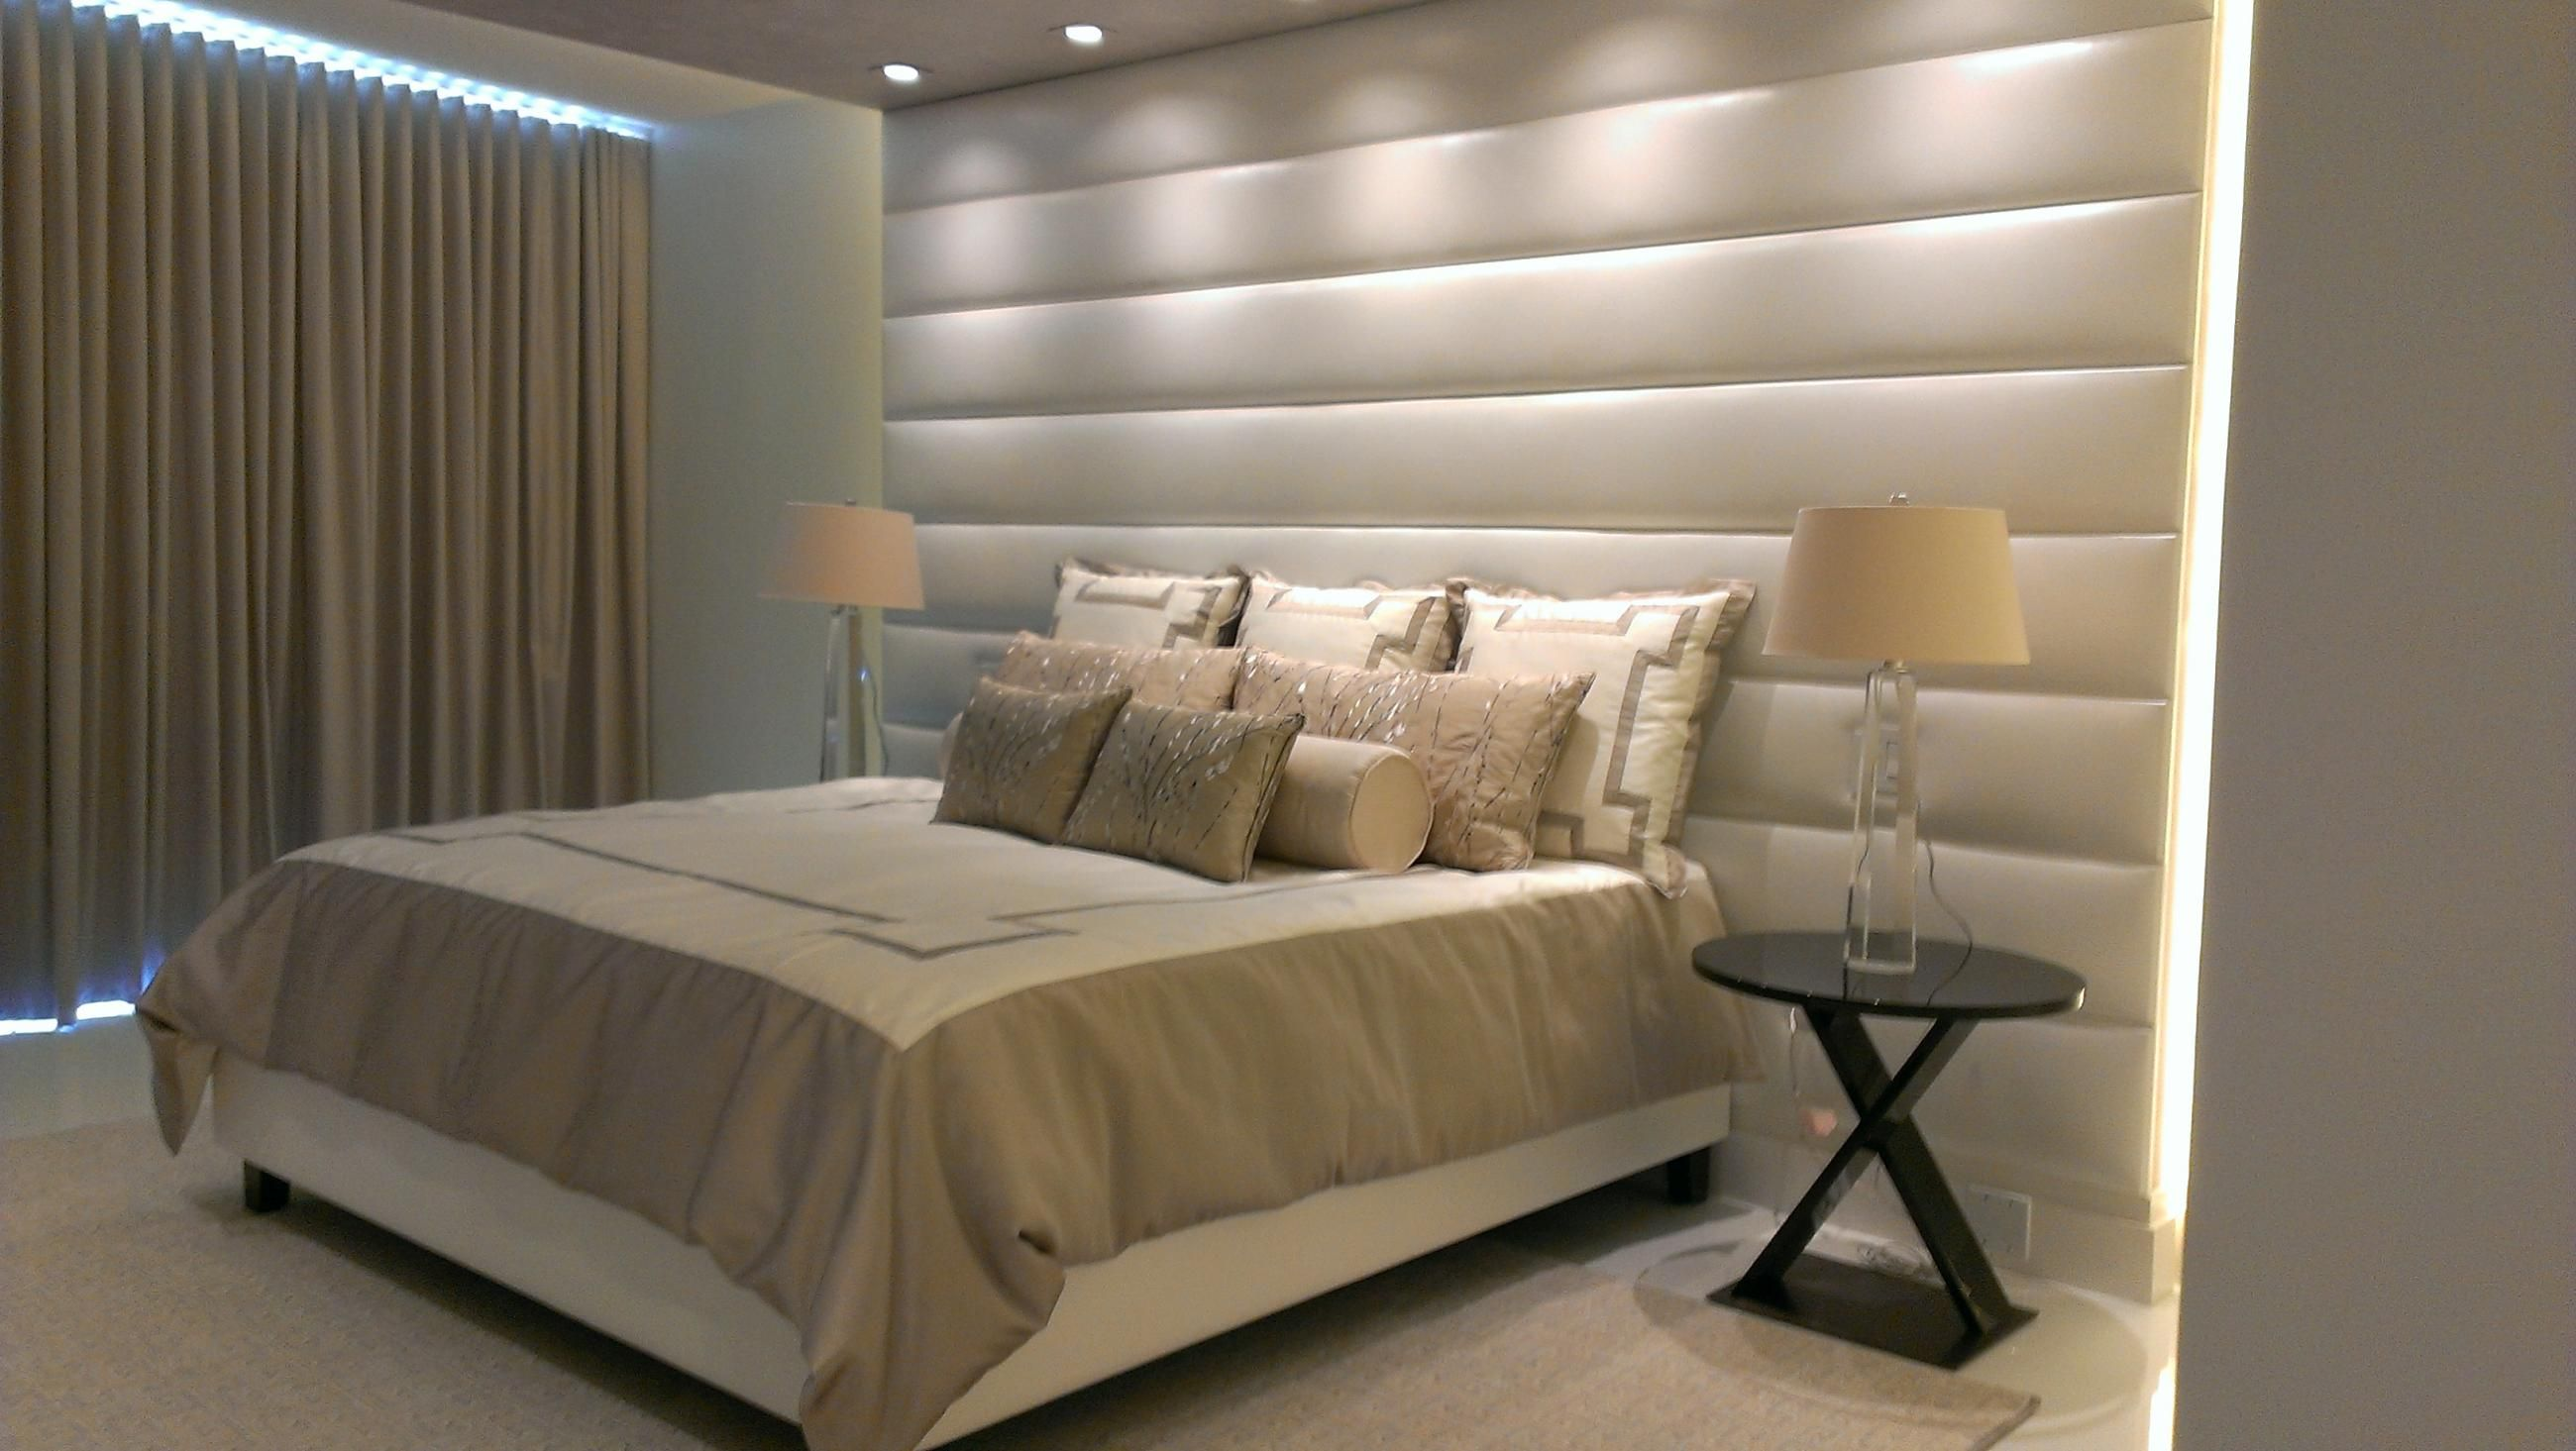 Wall Mounted Upholstered Headboard Panels With Contemporary